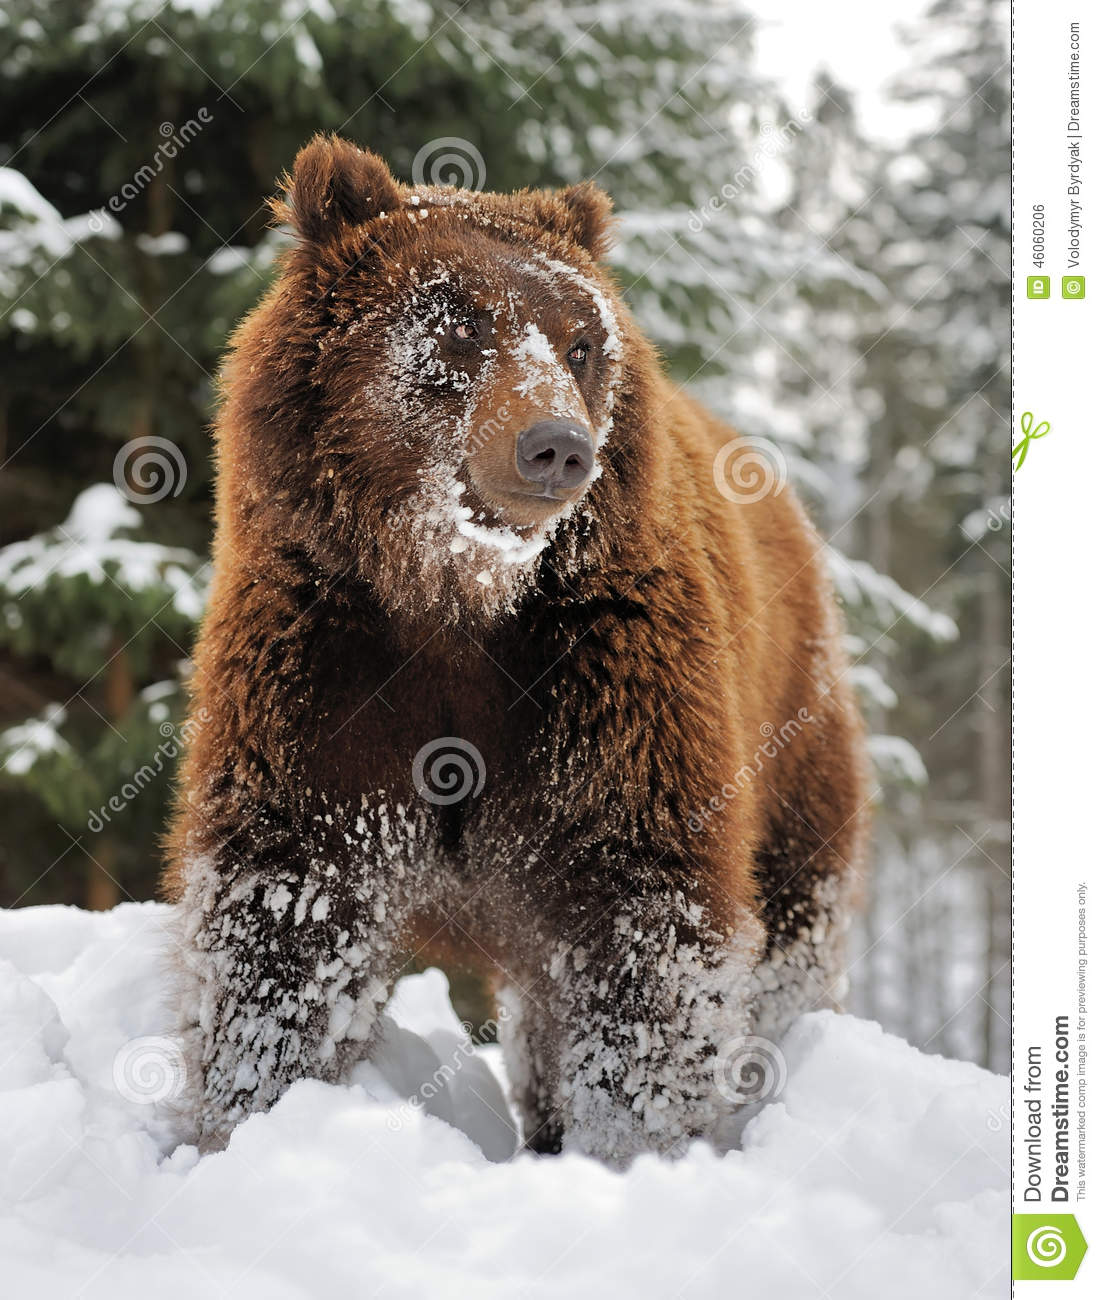 bear in winter forest stock photo image of arctos look. Black Bedroom Furniture Sets. Home Design Ideas